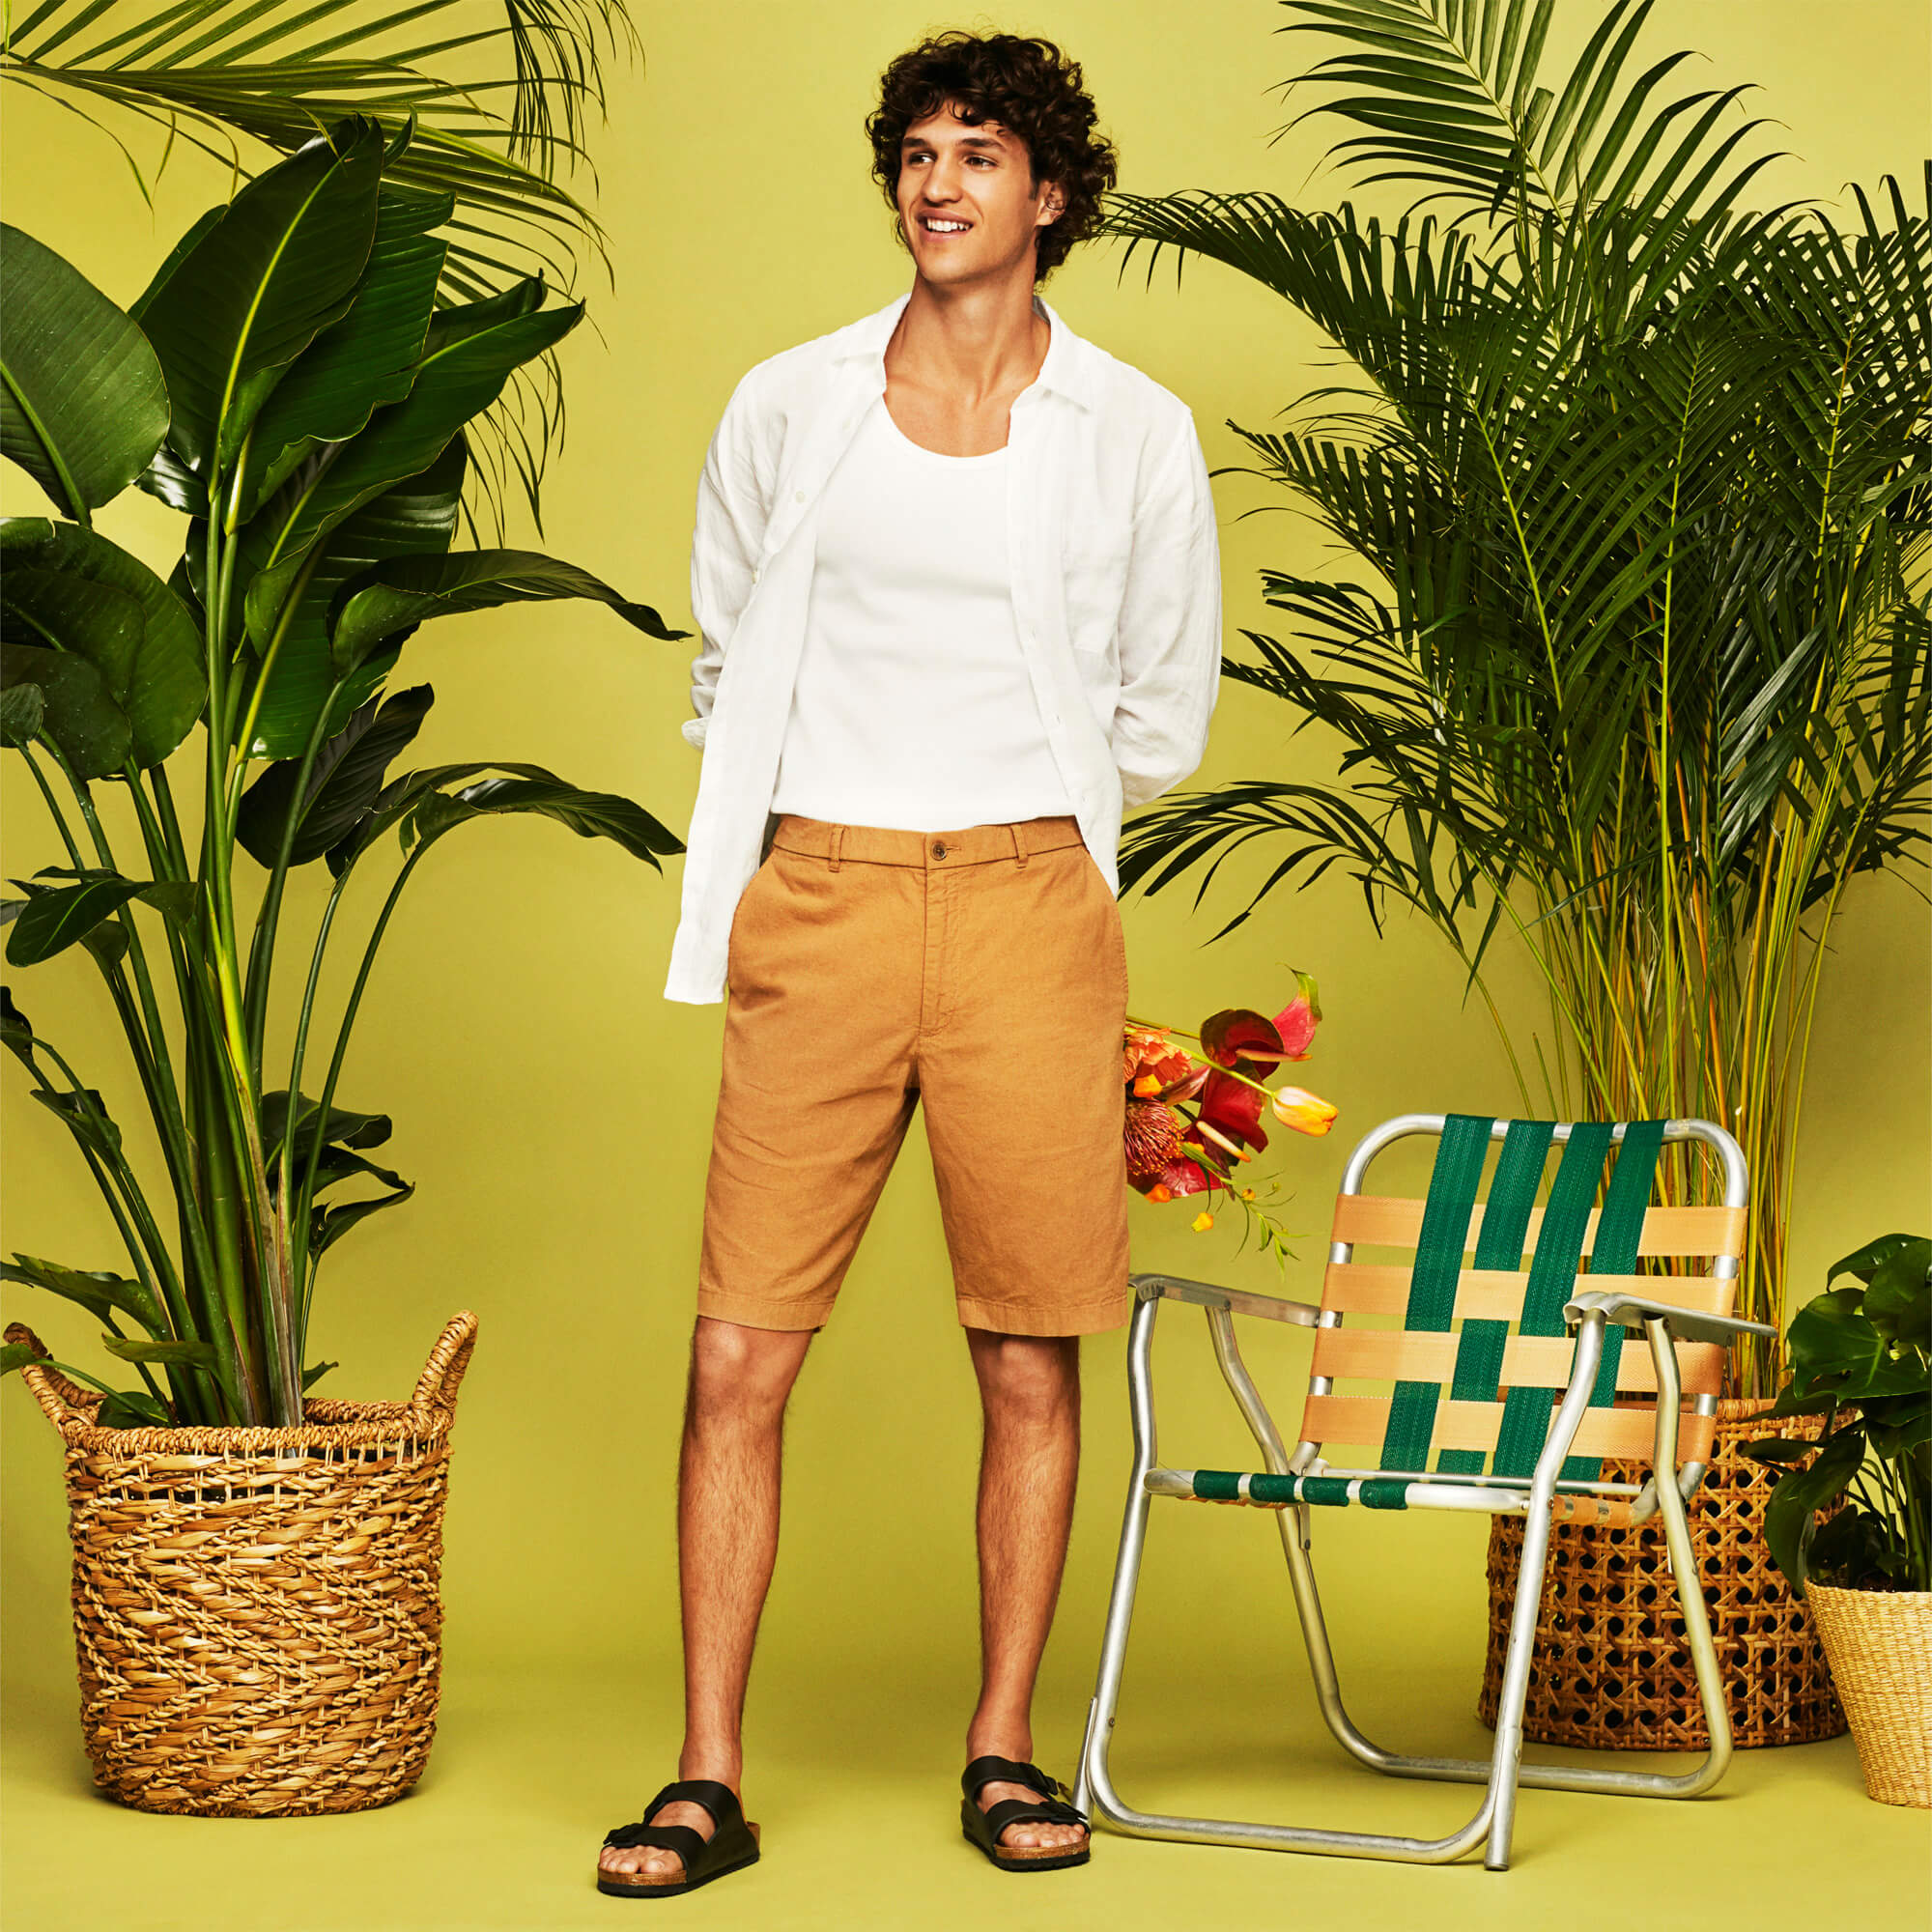 Uniqlo Resort Summer 2019 Campaign